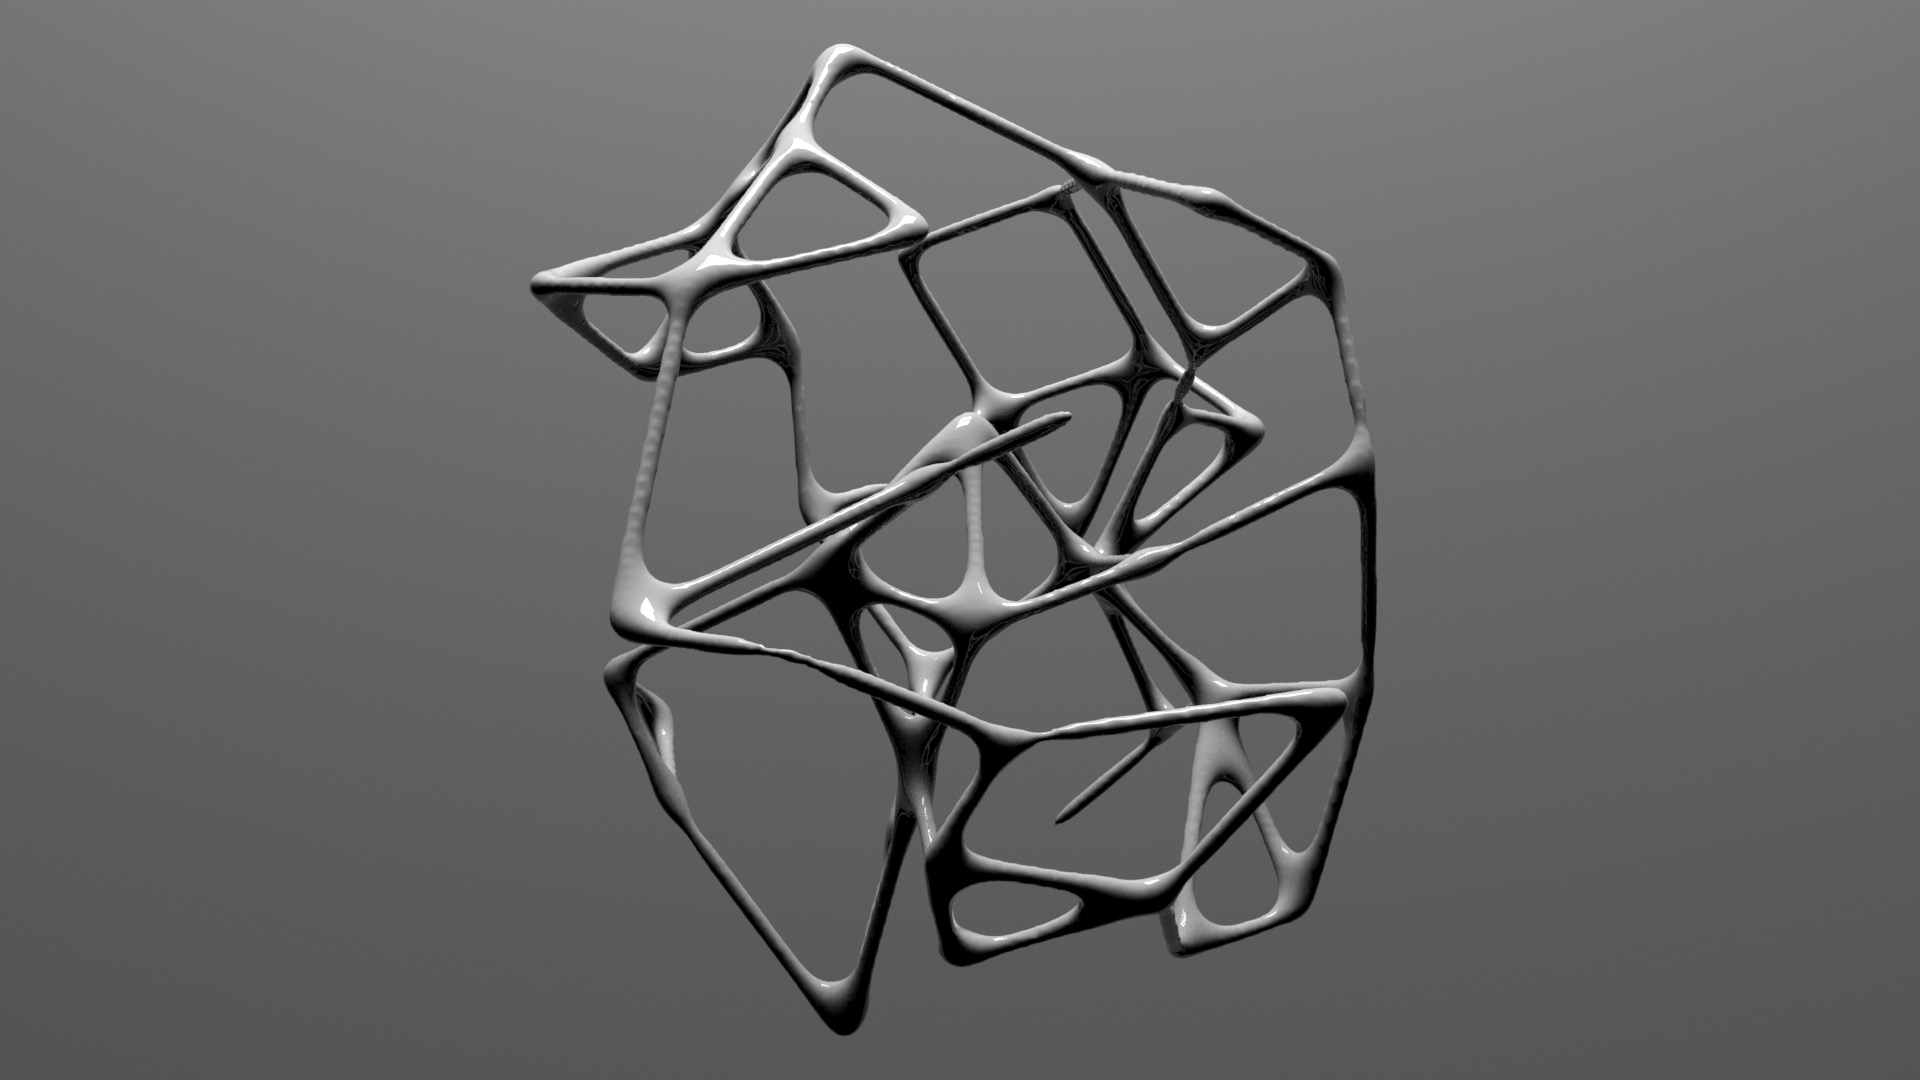 A shape formed from MD5 hash